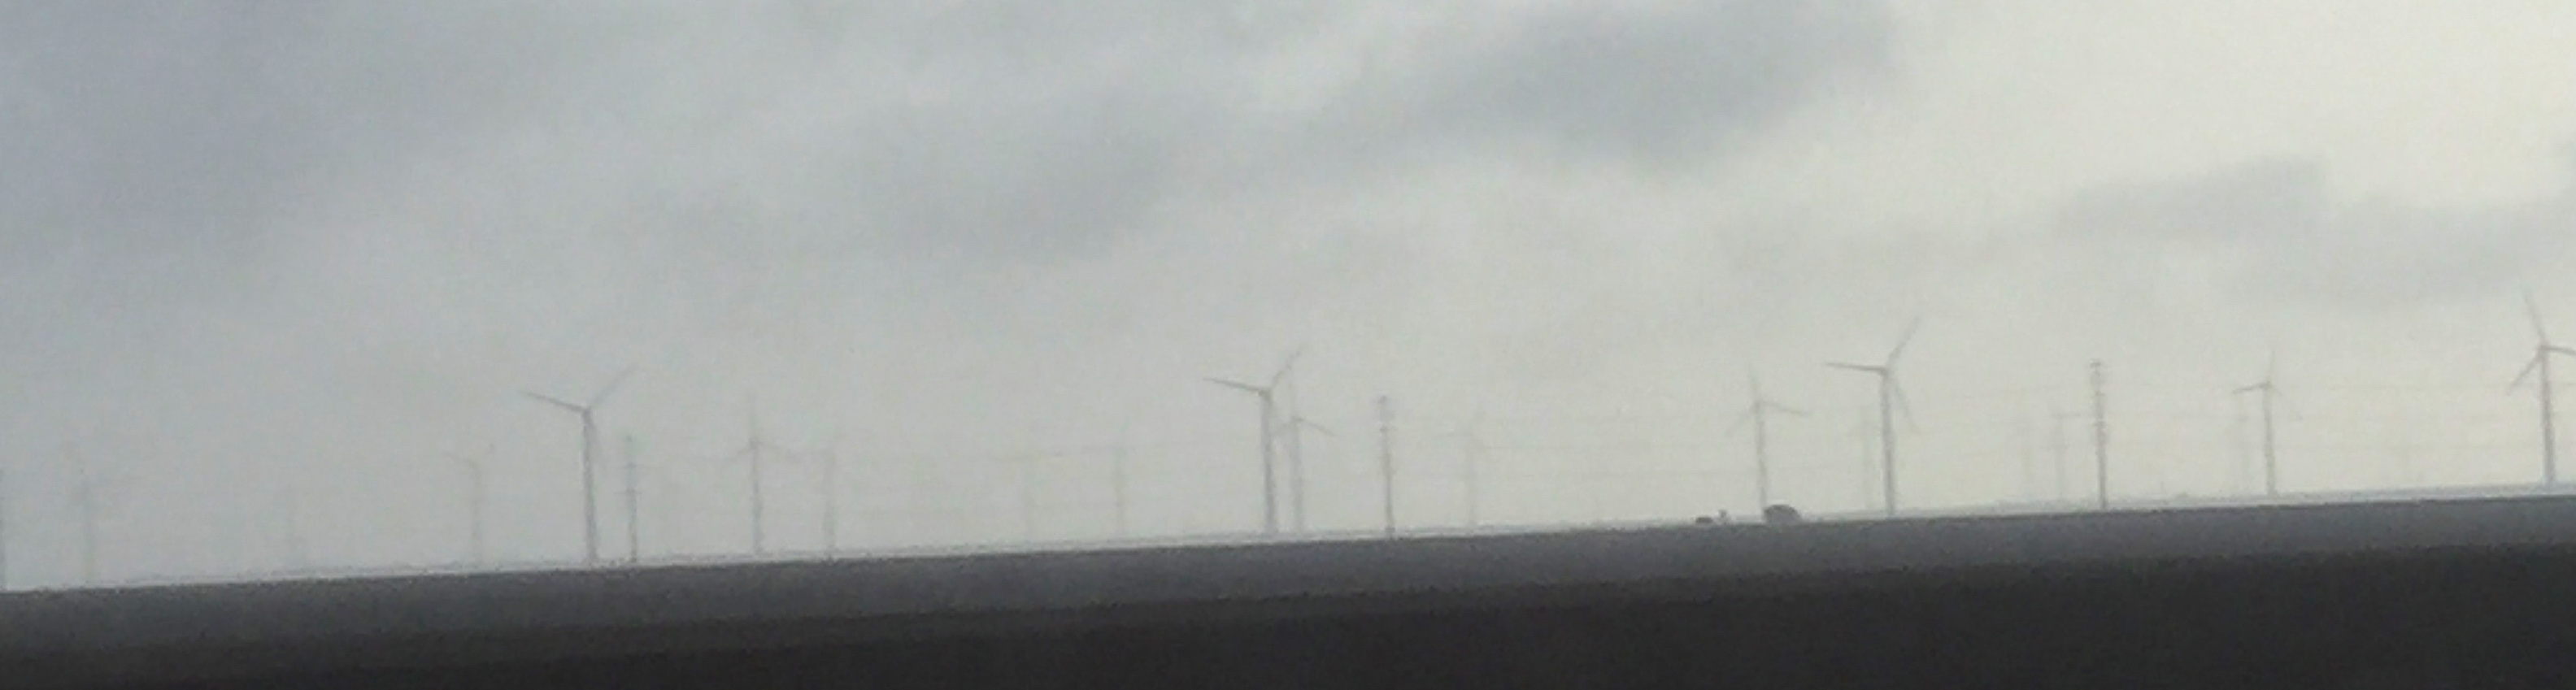 Windmills in the rain cropped